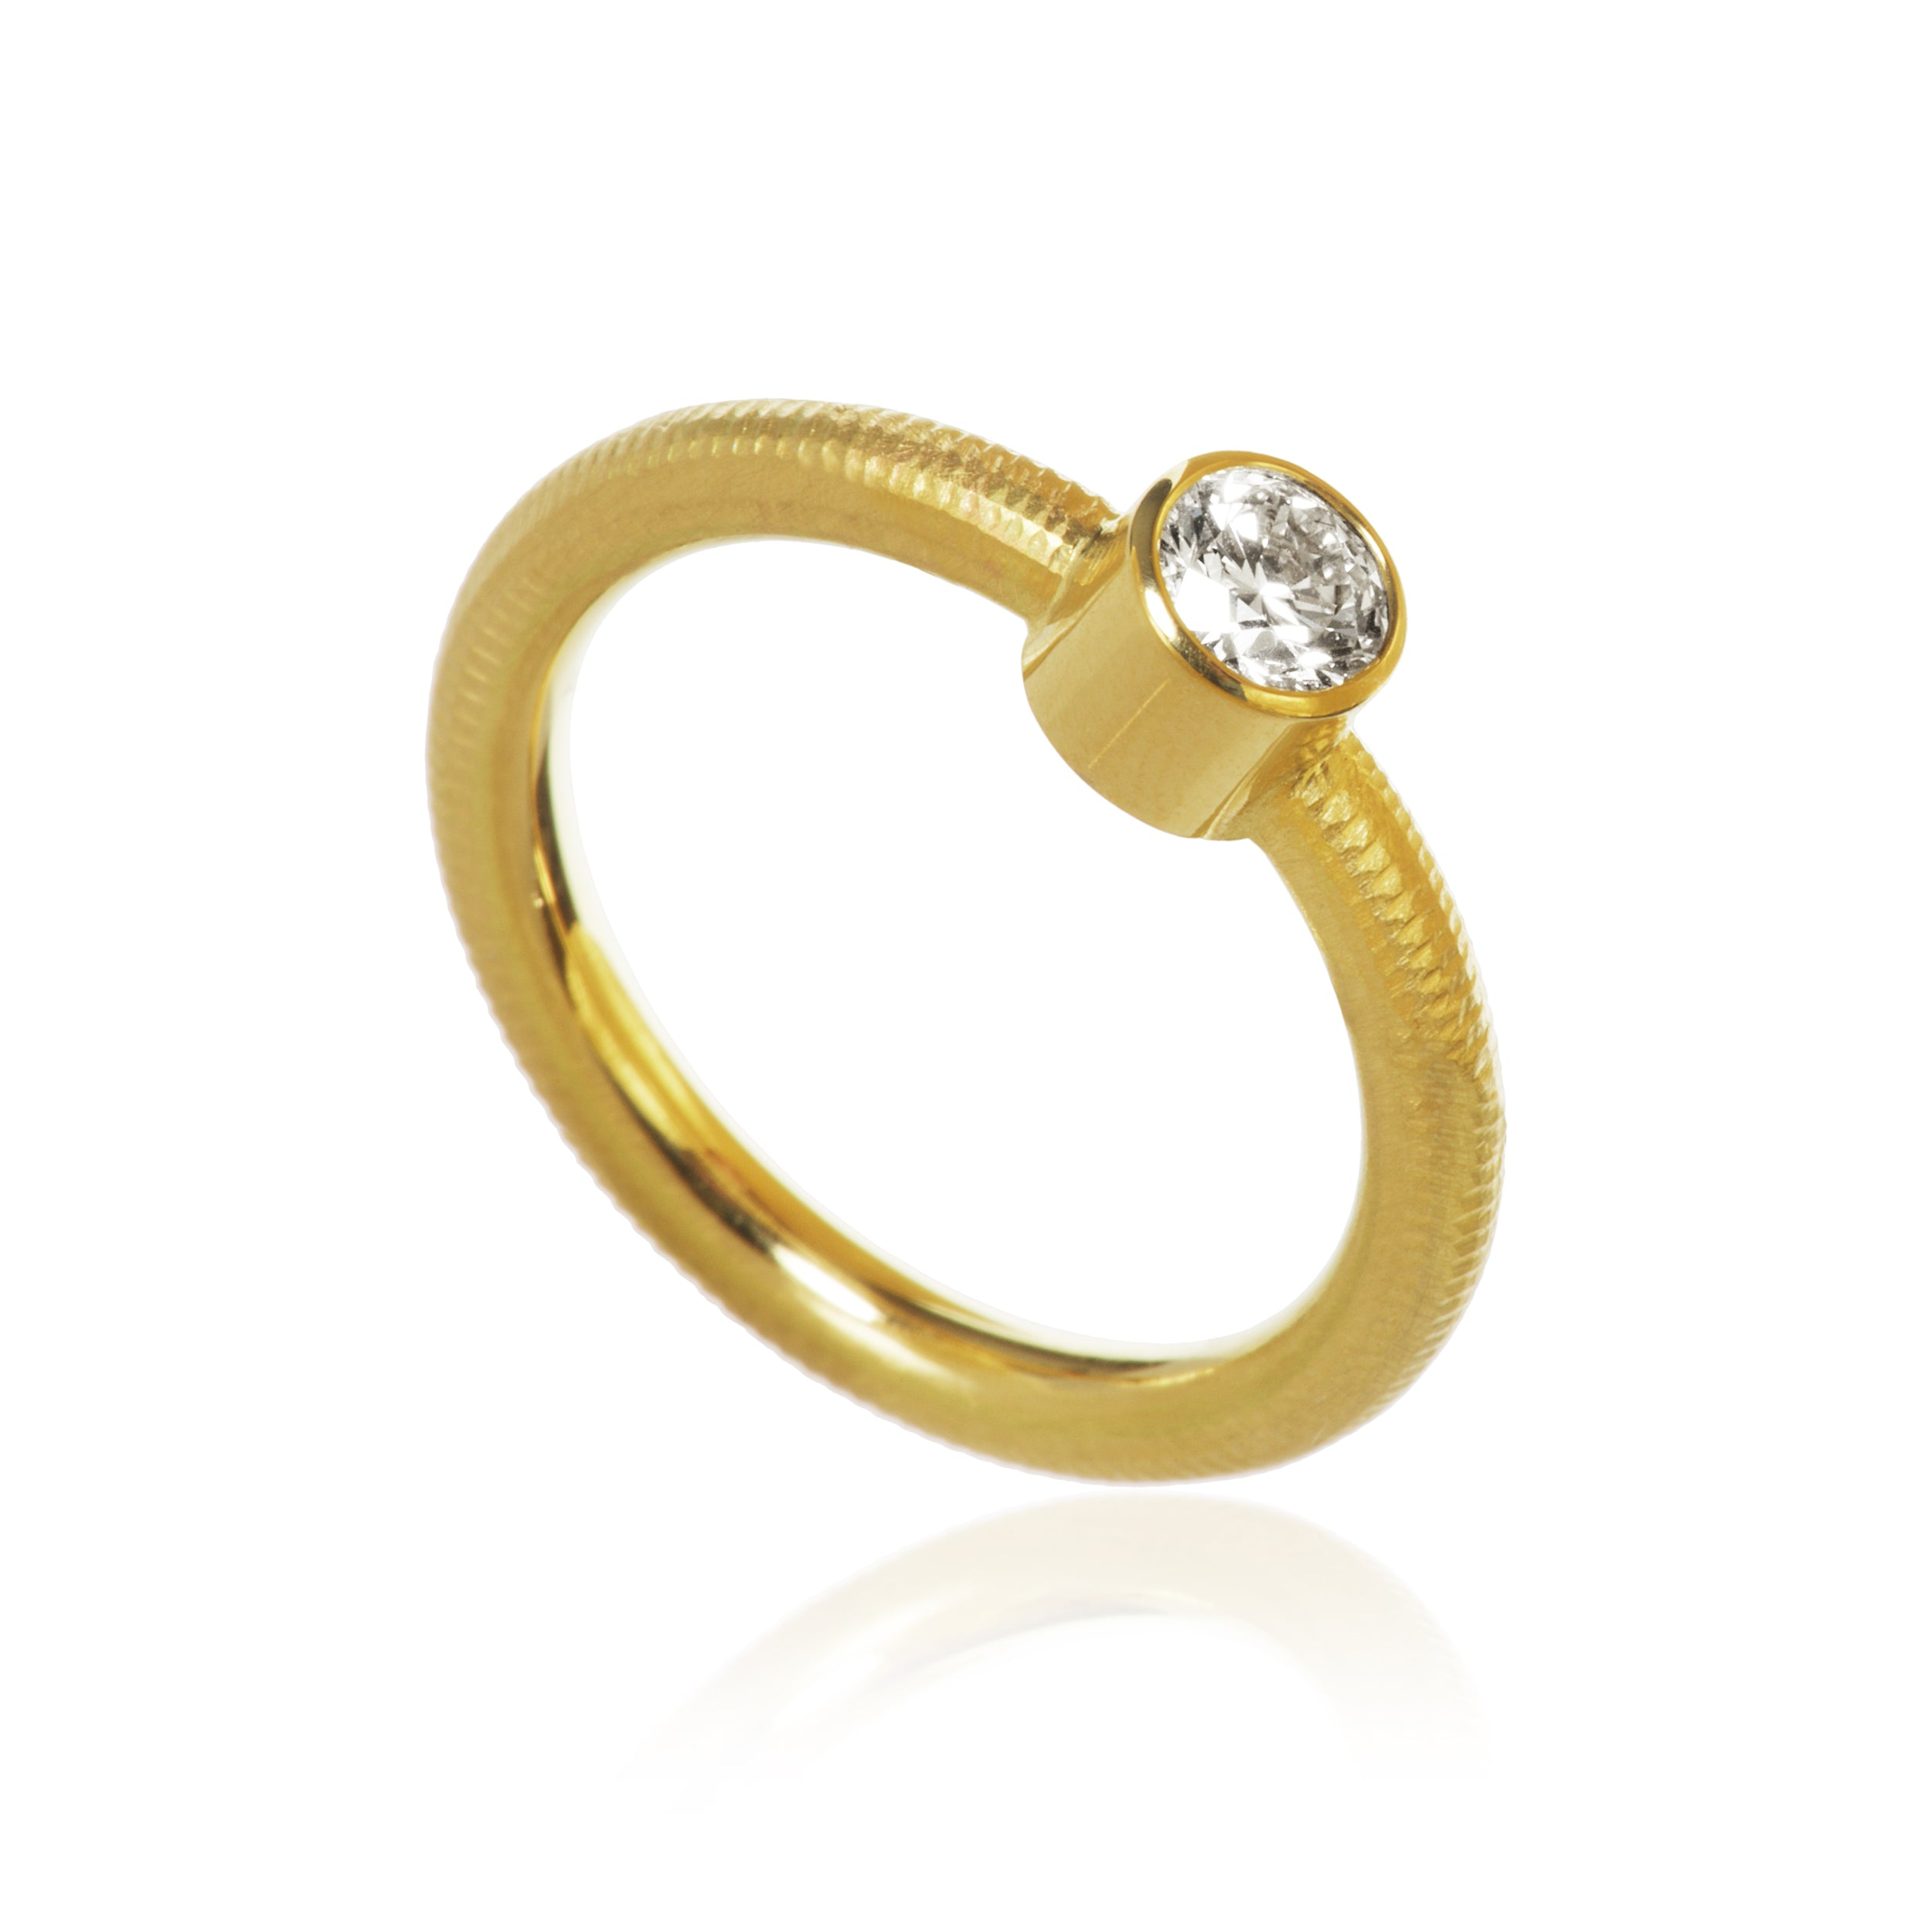 Twinkle ring. With 1 brilliant cut diamond. Total 0,40 ct. J, si1, Ex. cut.